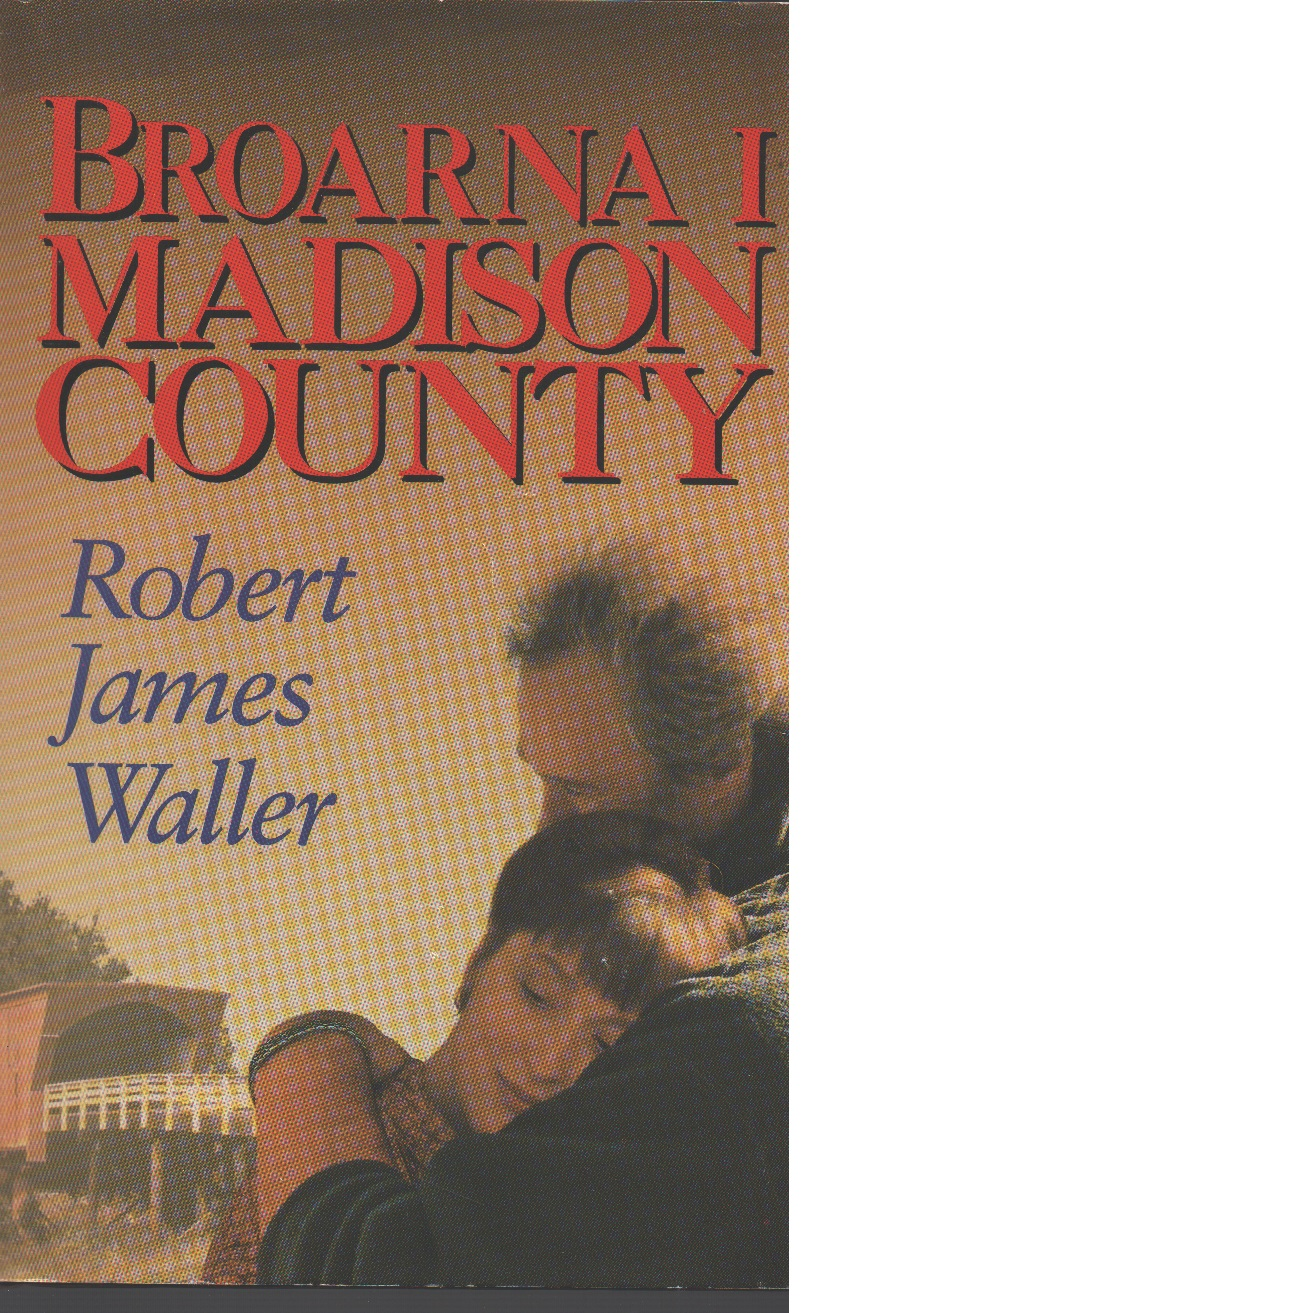 Broarna i Madison County - Waller, Robert James